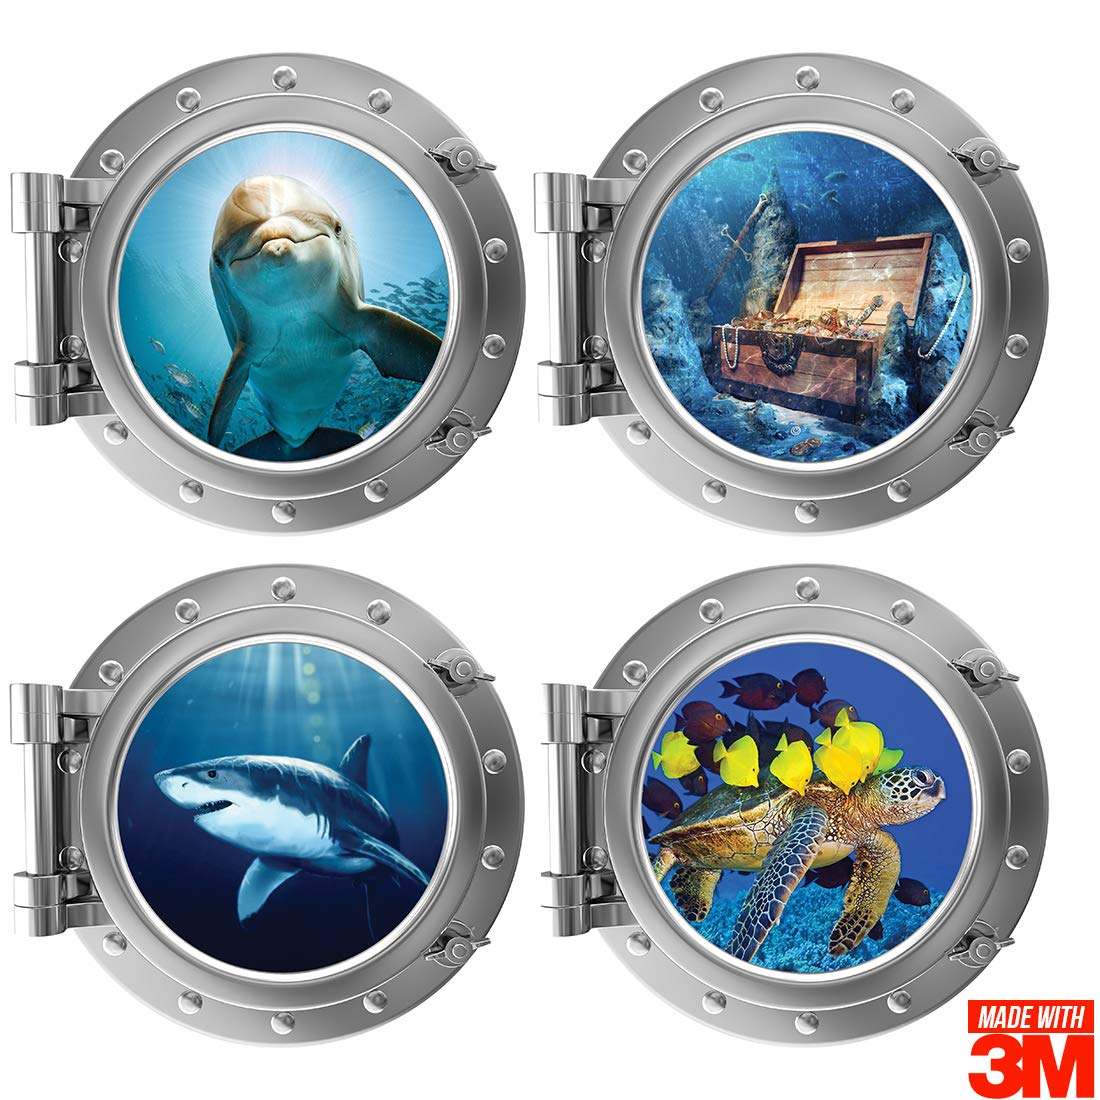 "OFISSON - 4 Pieces Bedroom 3D Wall Stickers - Porthole Sea Life Art Sticker 3M for Kids (Girls and Boys) Playroom (12"" Diameter Each)"